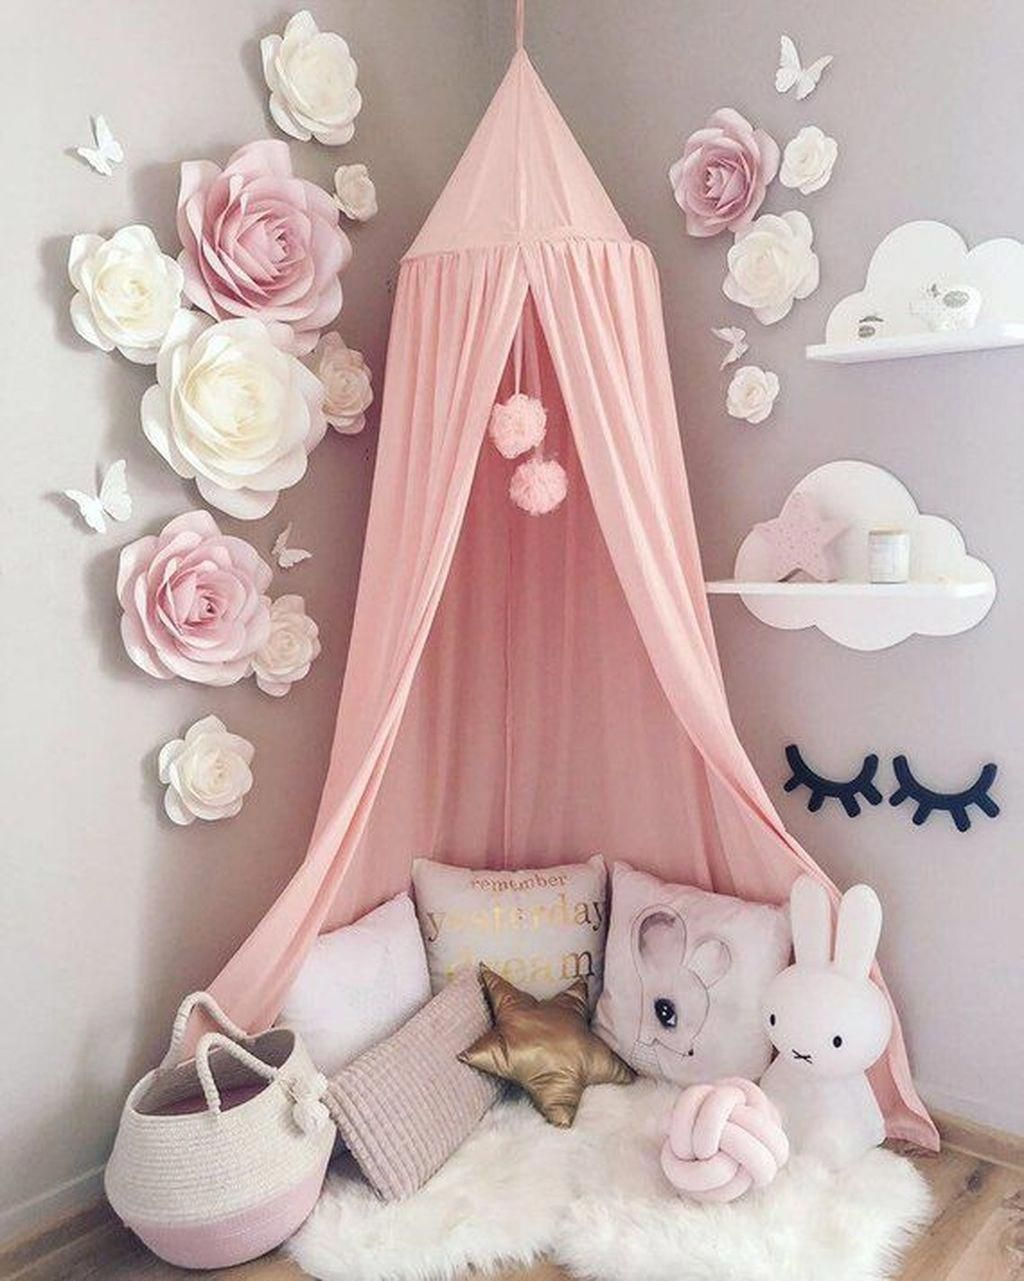 35 Amazingly Pretty Shabby Chic Bedroom Design And Decor Ideas Baby Room Decor Kid Room Decor Princess Bedrooms